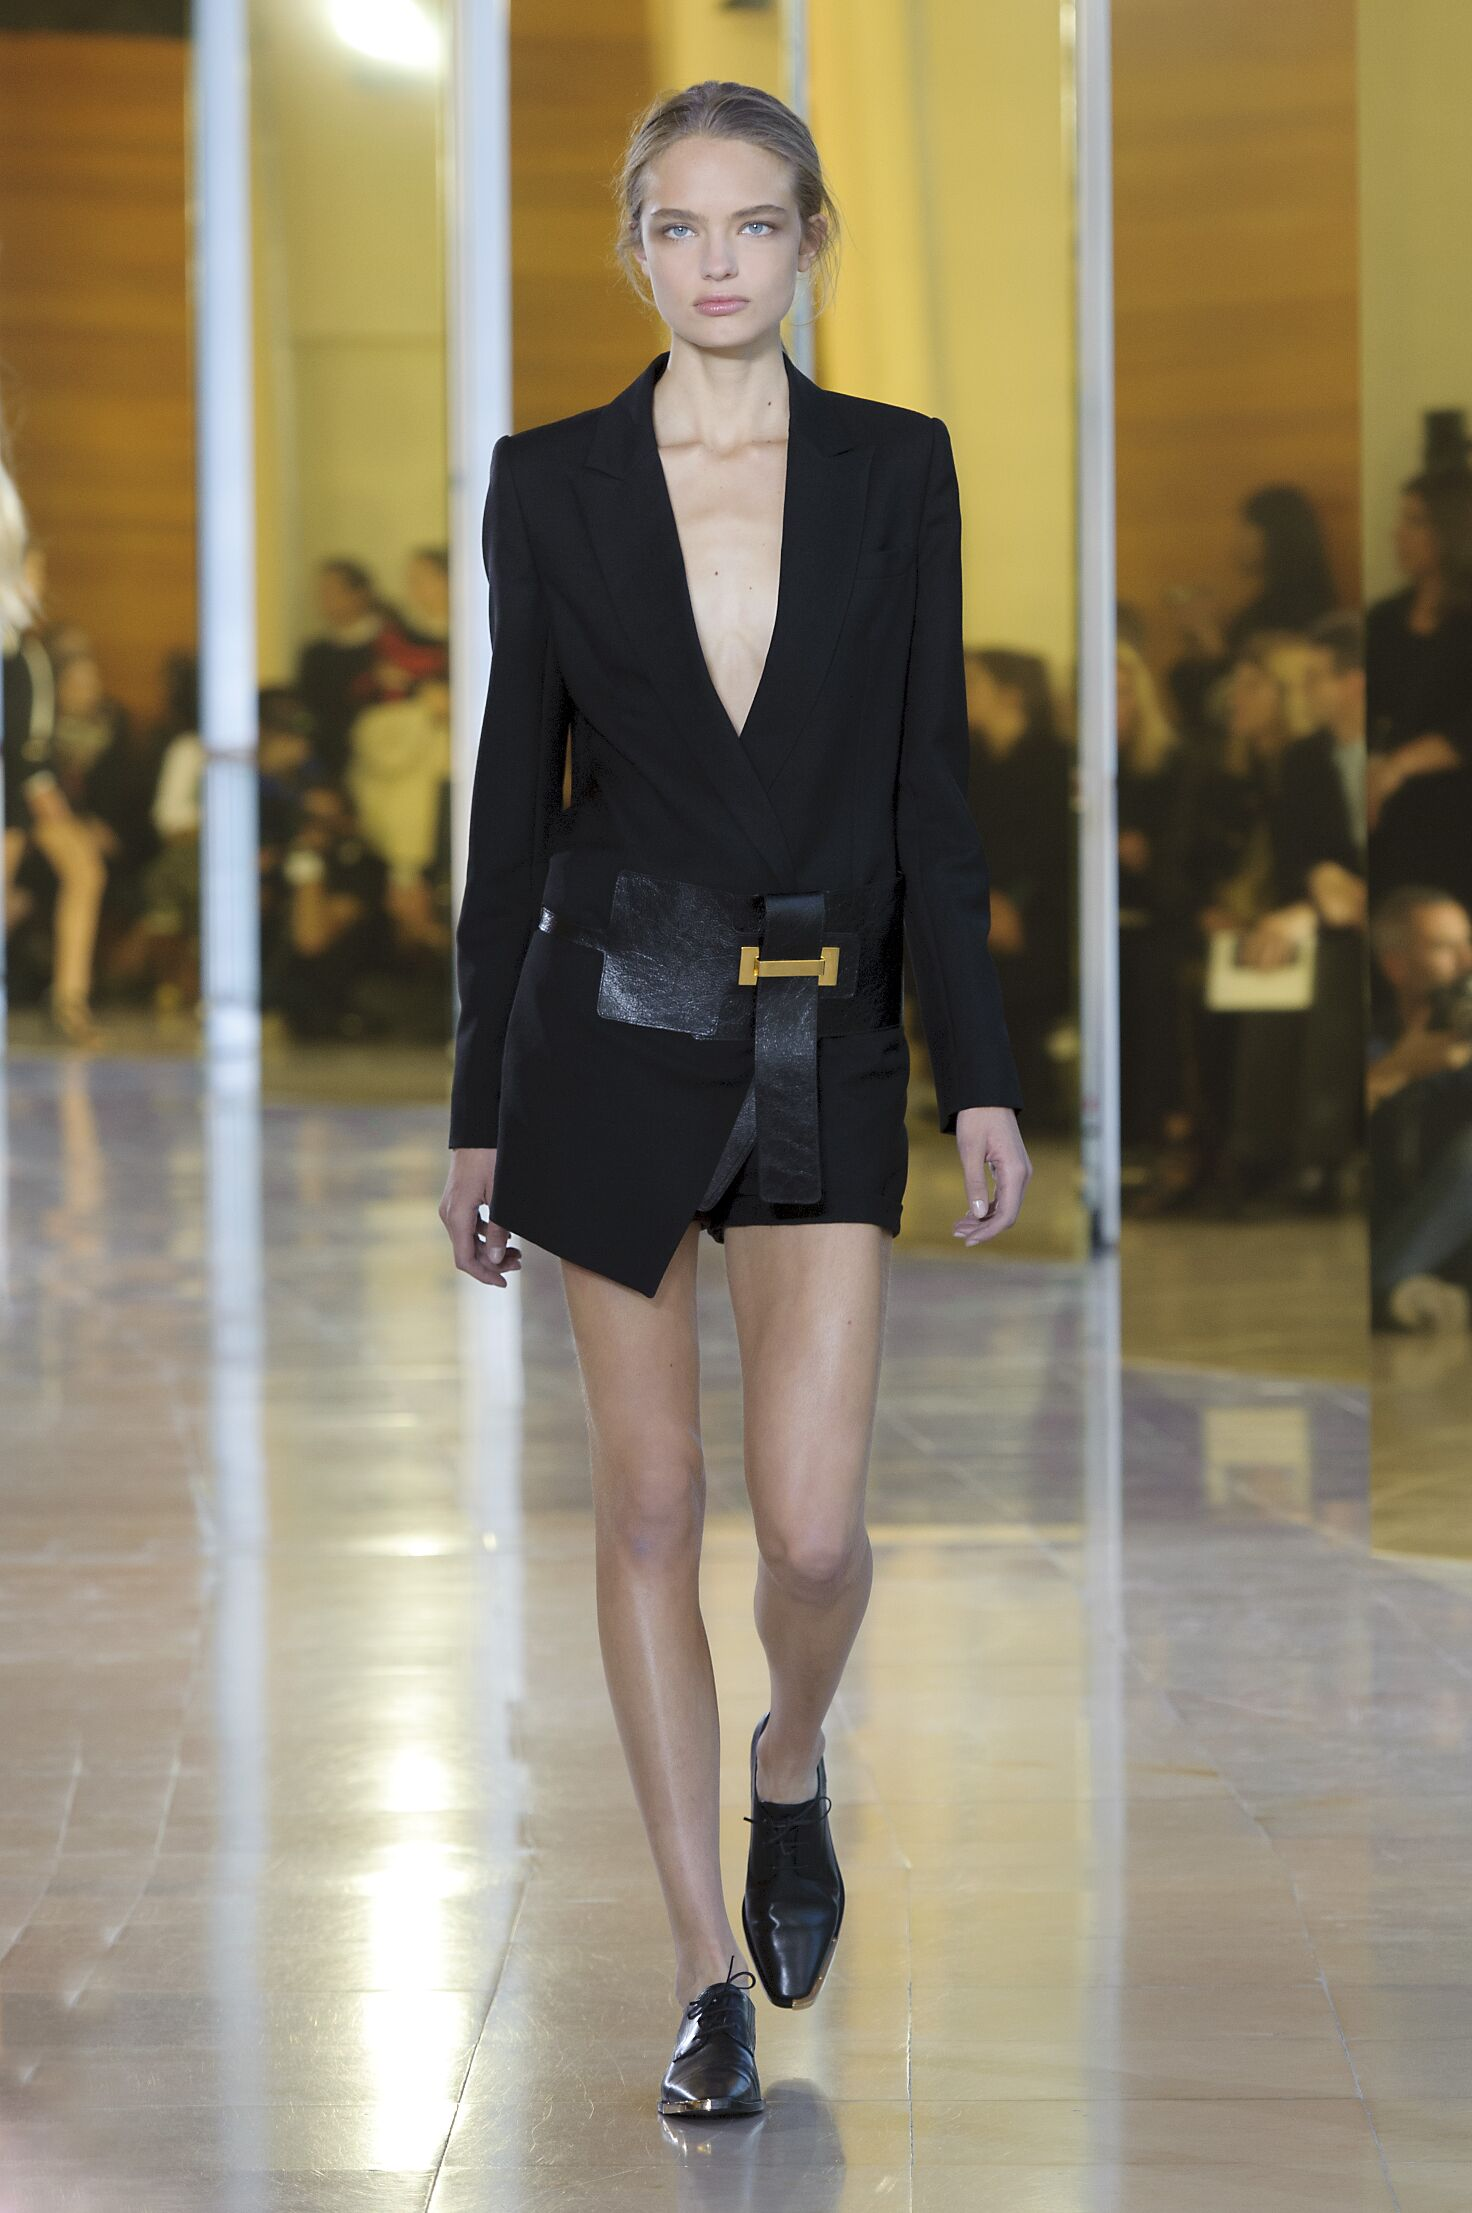 Anthony Vaccarello SS 2016 Womenswear